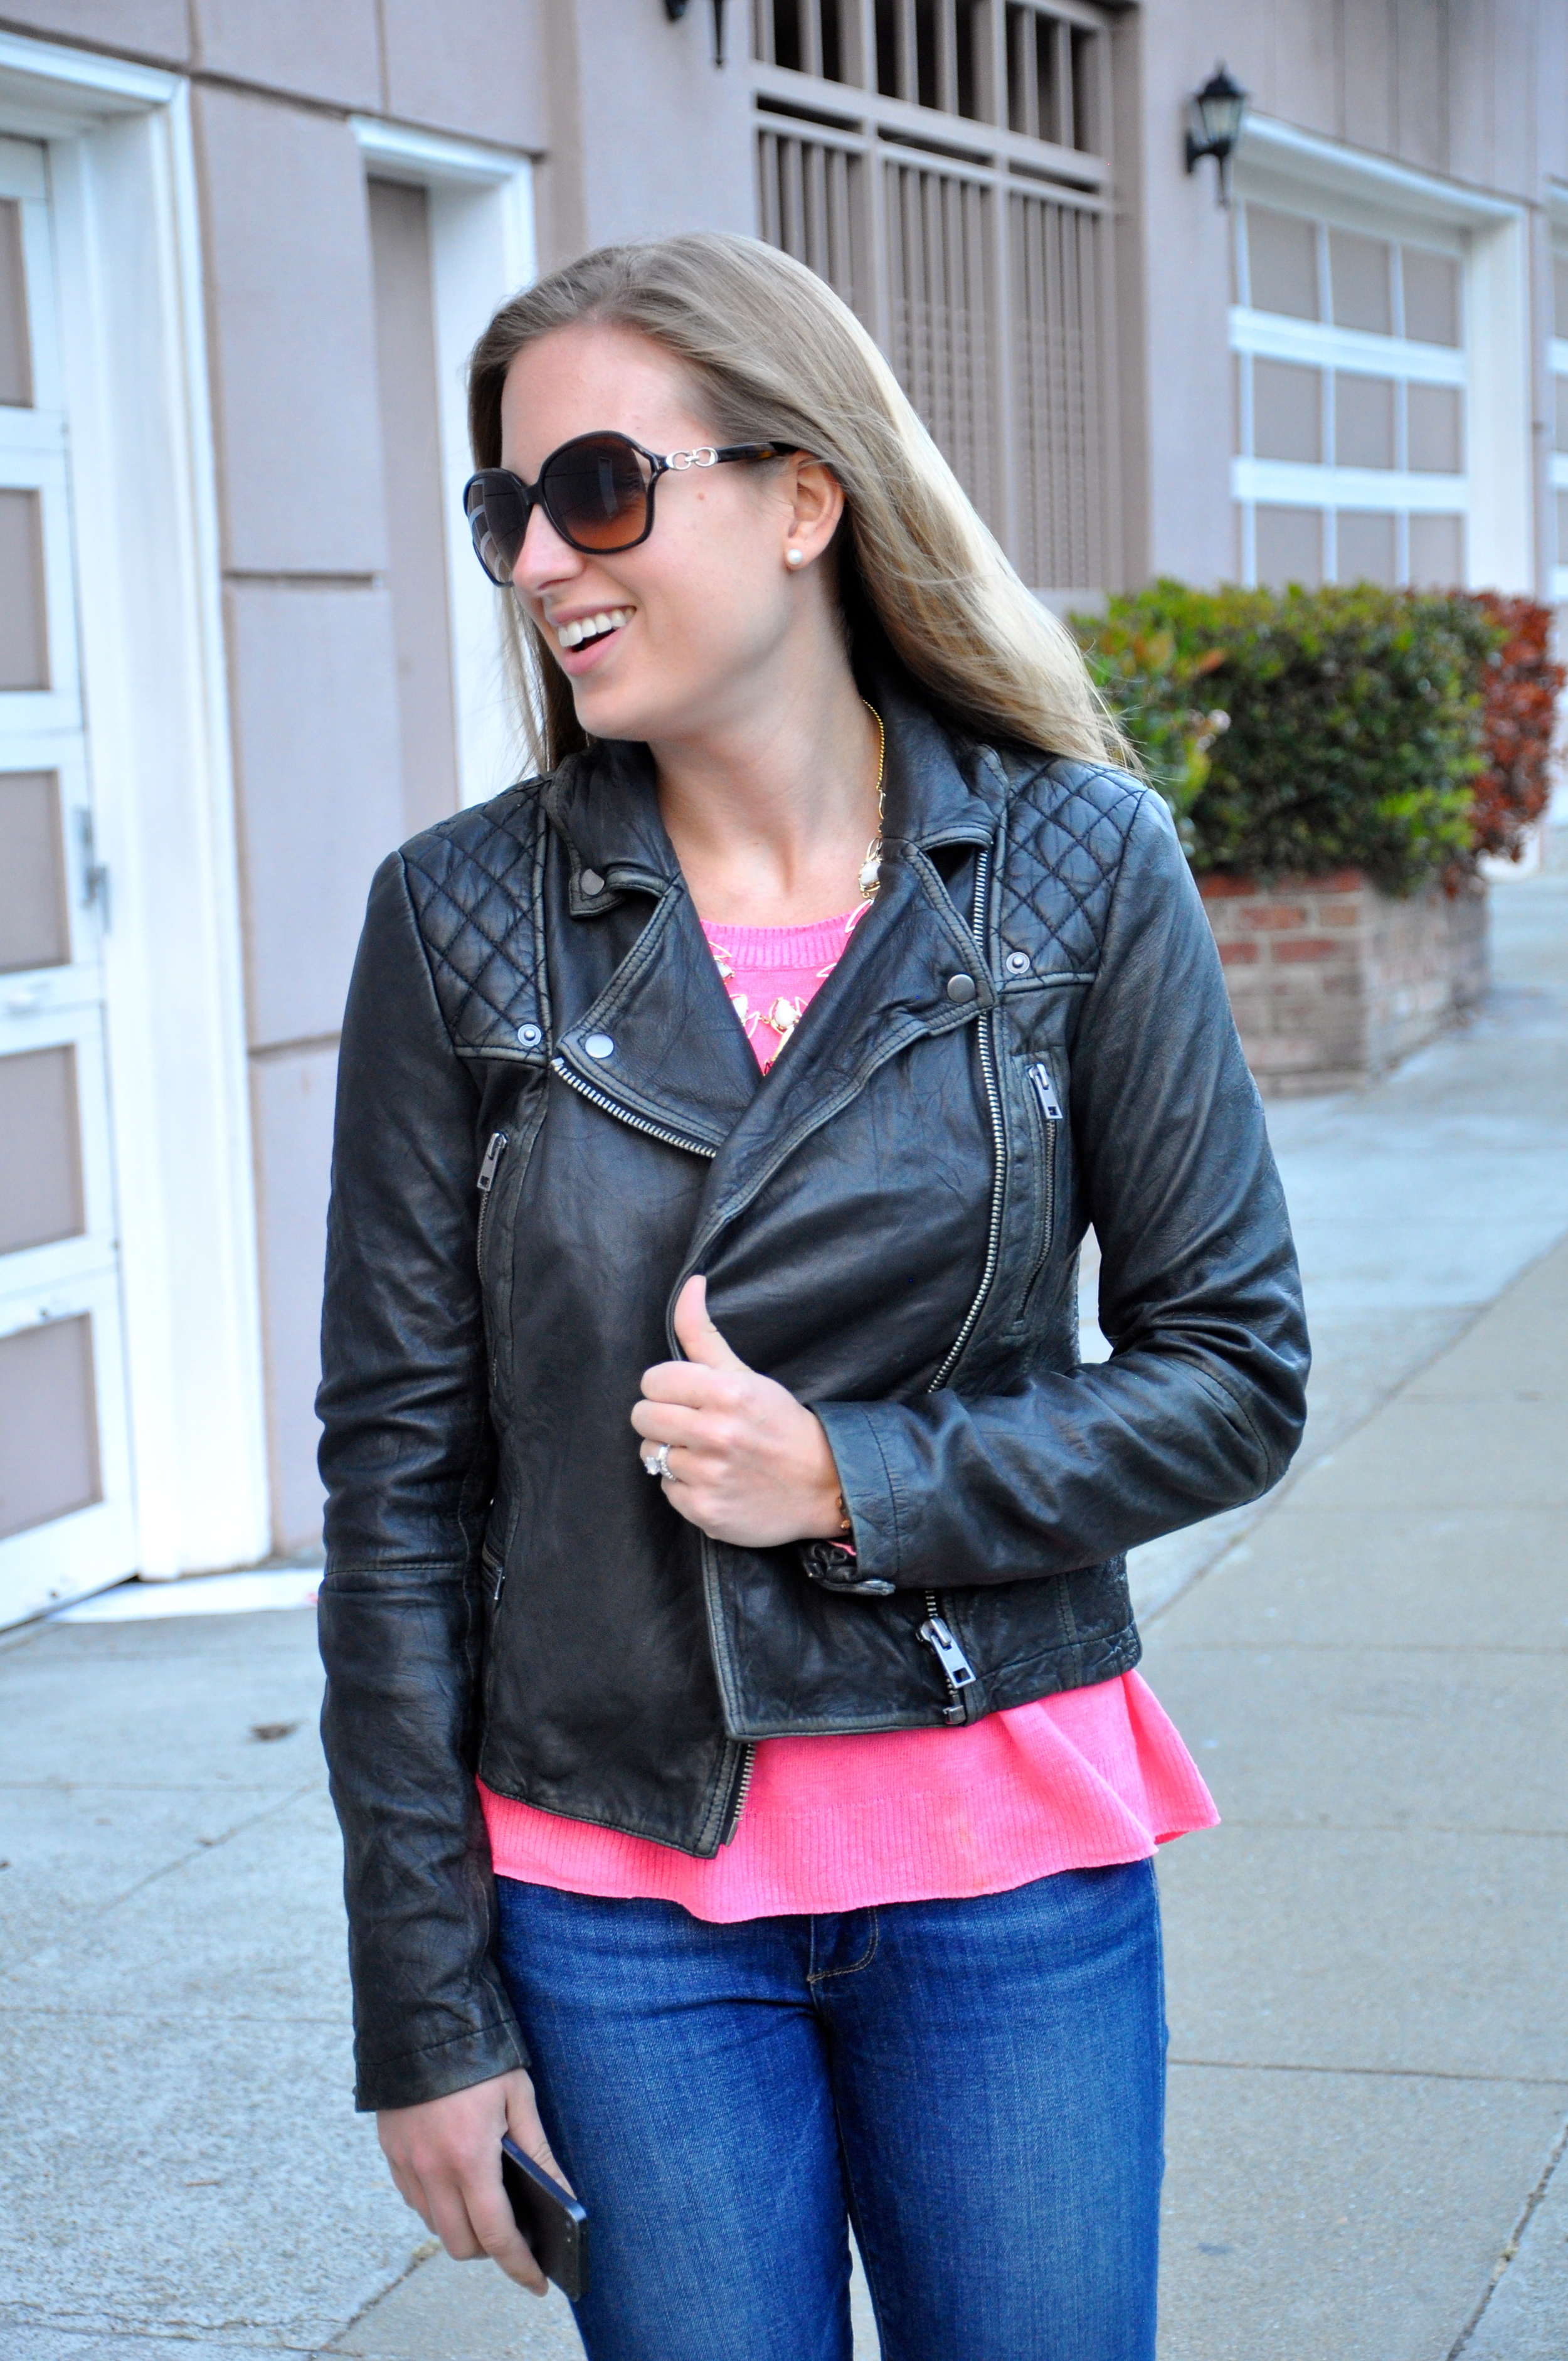 All Saints leather jacket, Madewell sweater, Paige jeans (similar), J. Crew flats, Kendra Scott necklace, Michael Kors watch (similar), Coach sunglasses (old)